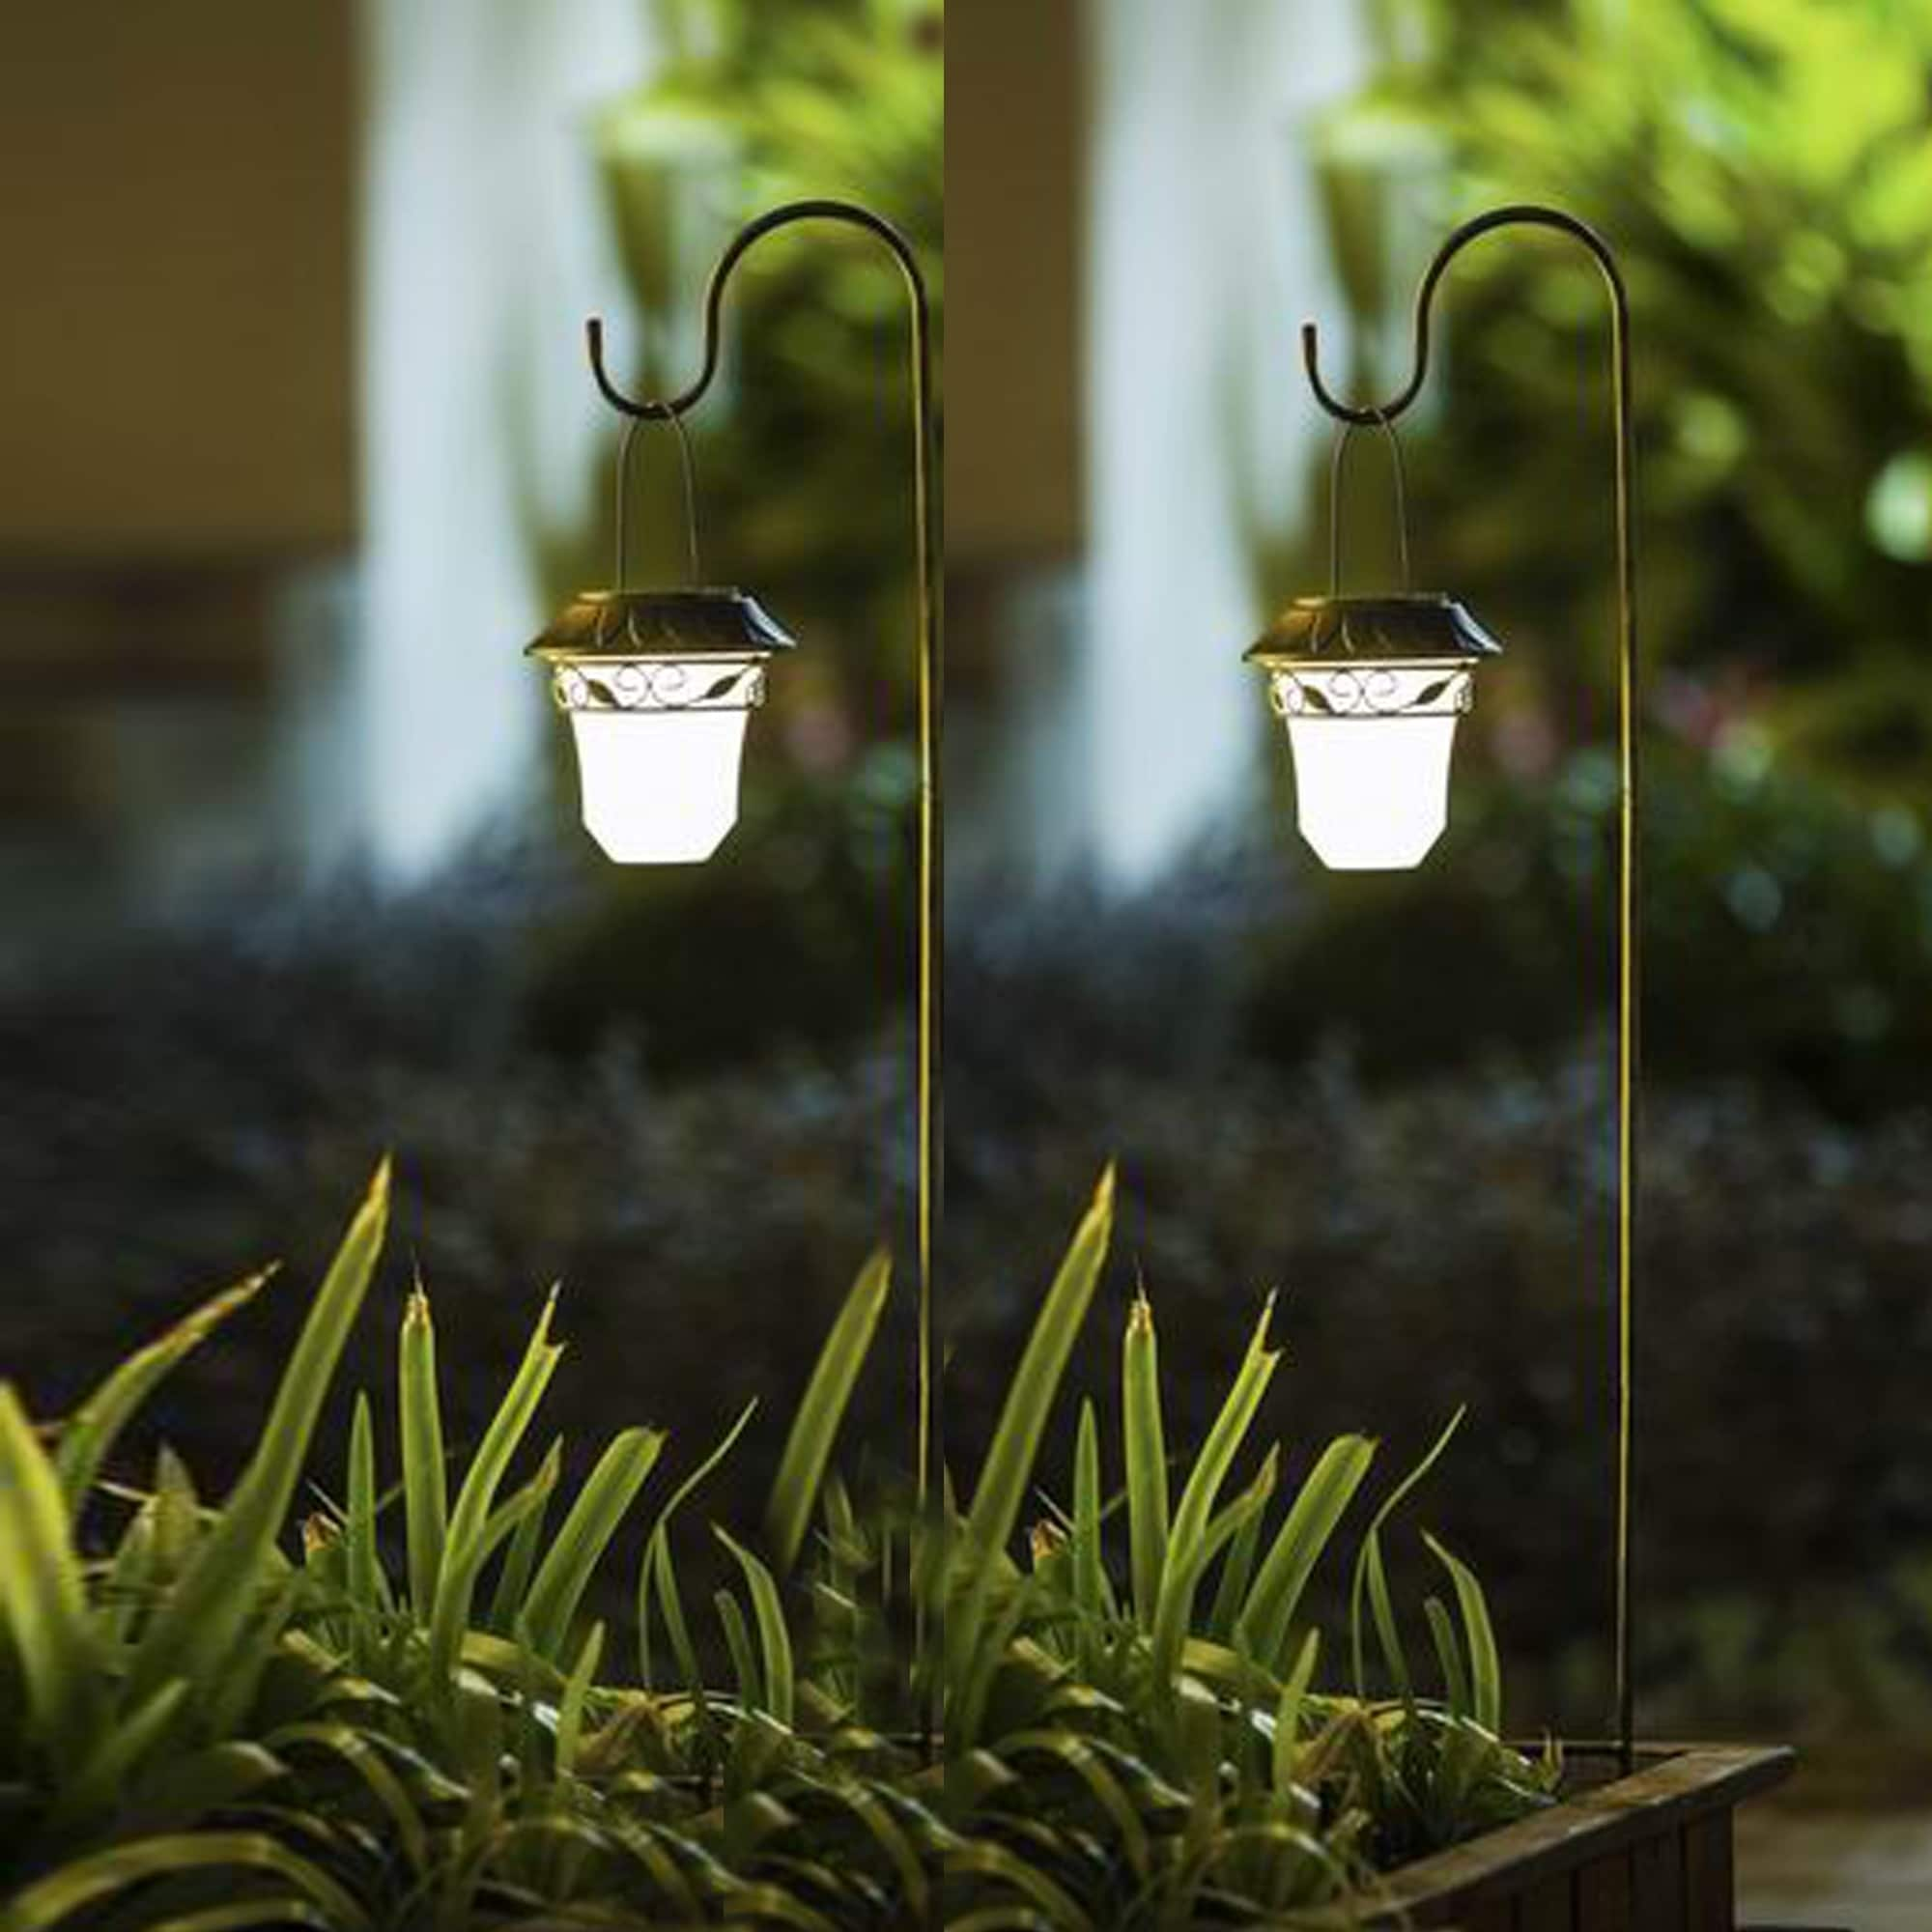 Set of 2 Decorative Leaves Design Hanging Solar Lights wi...